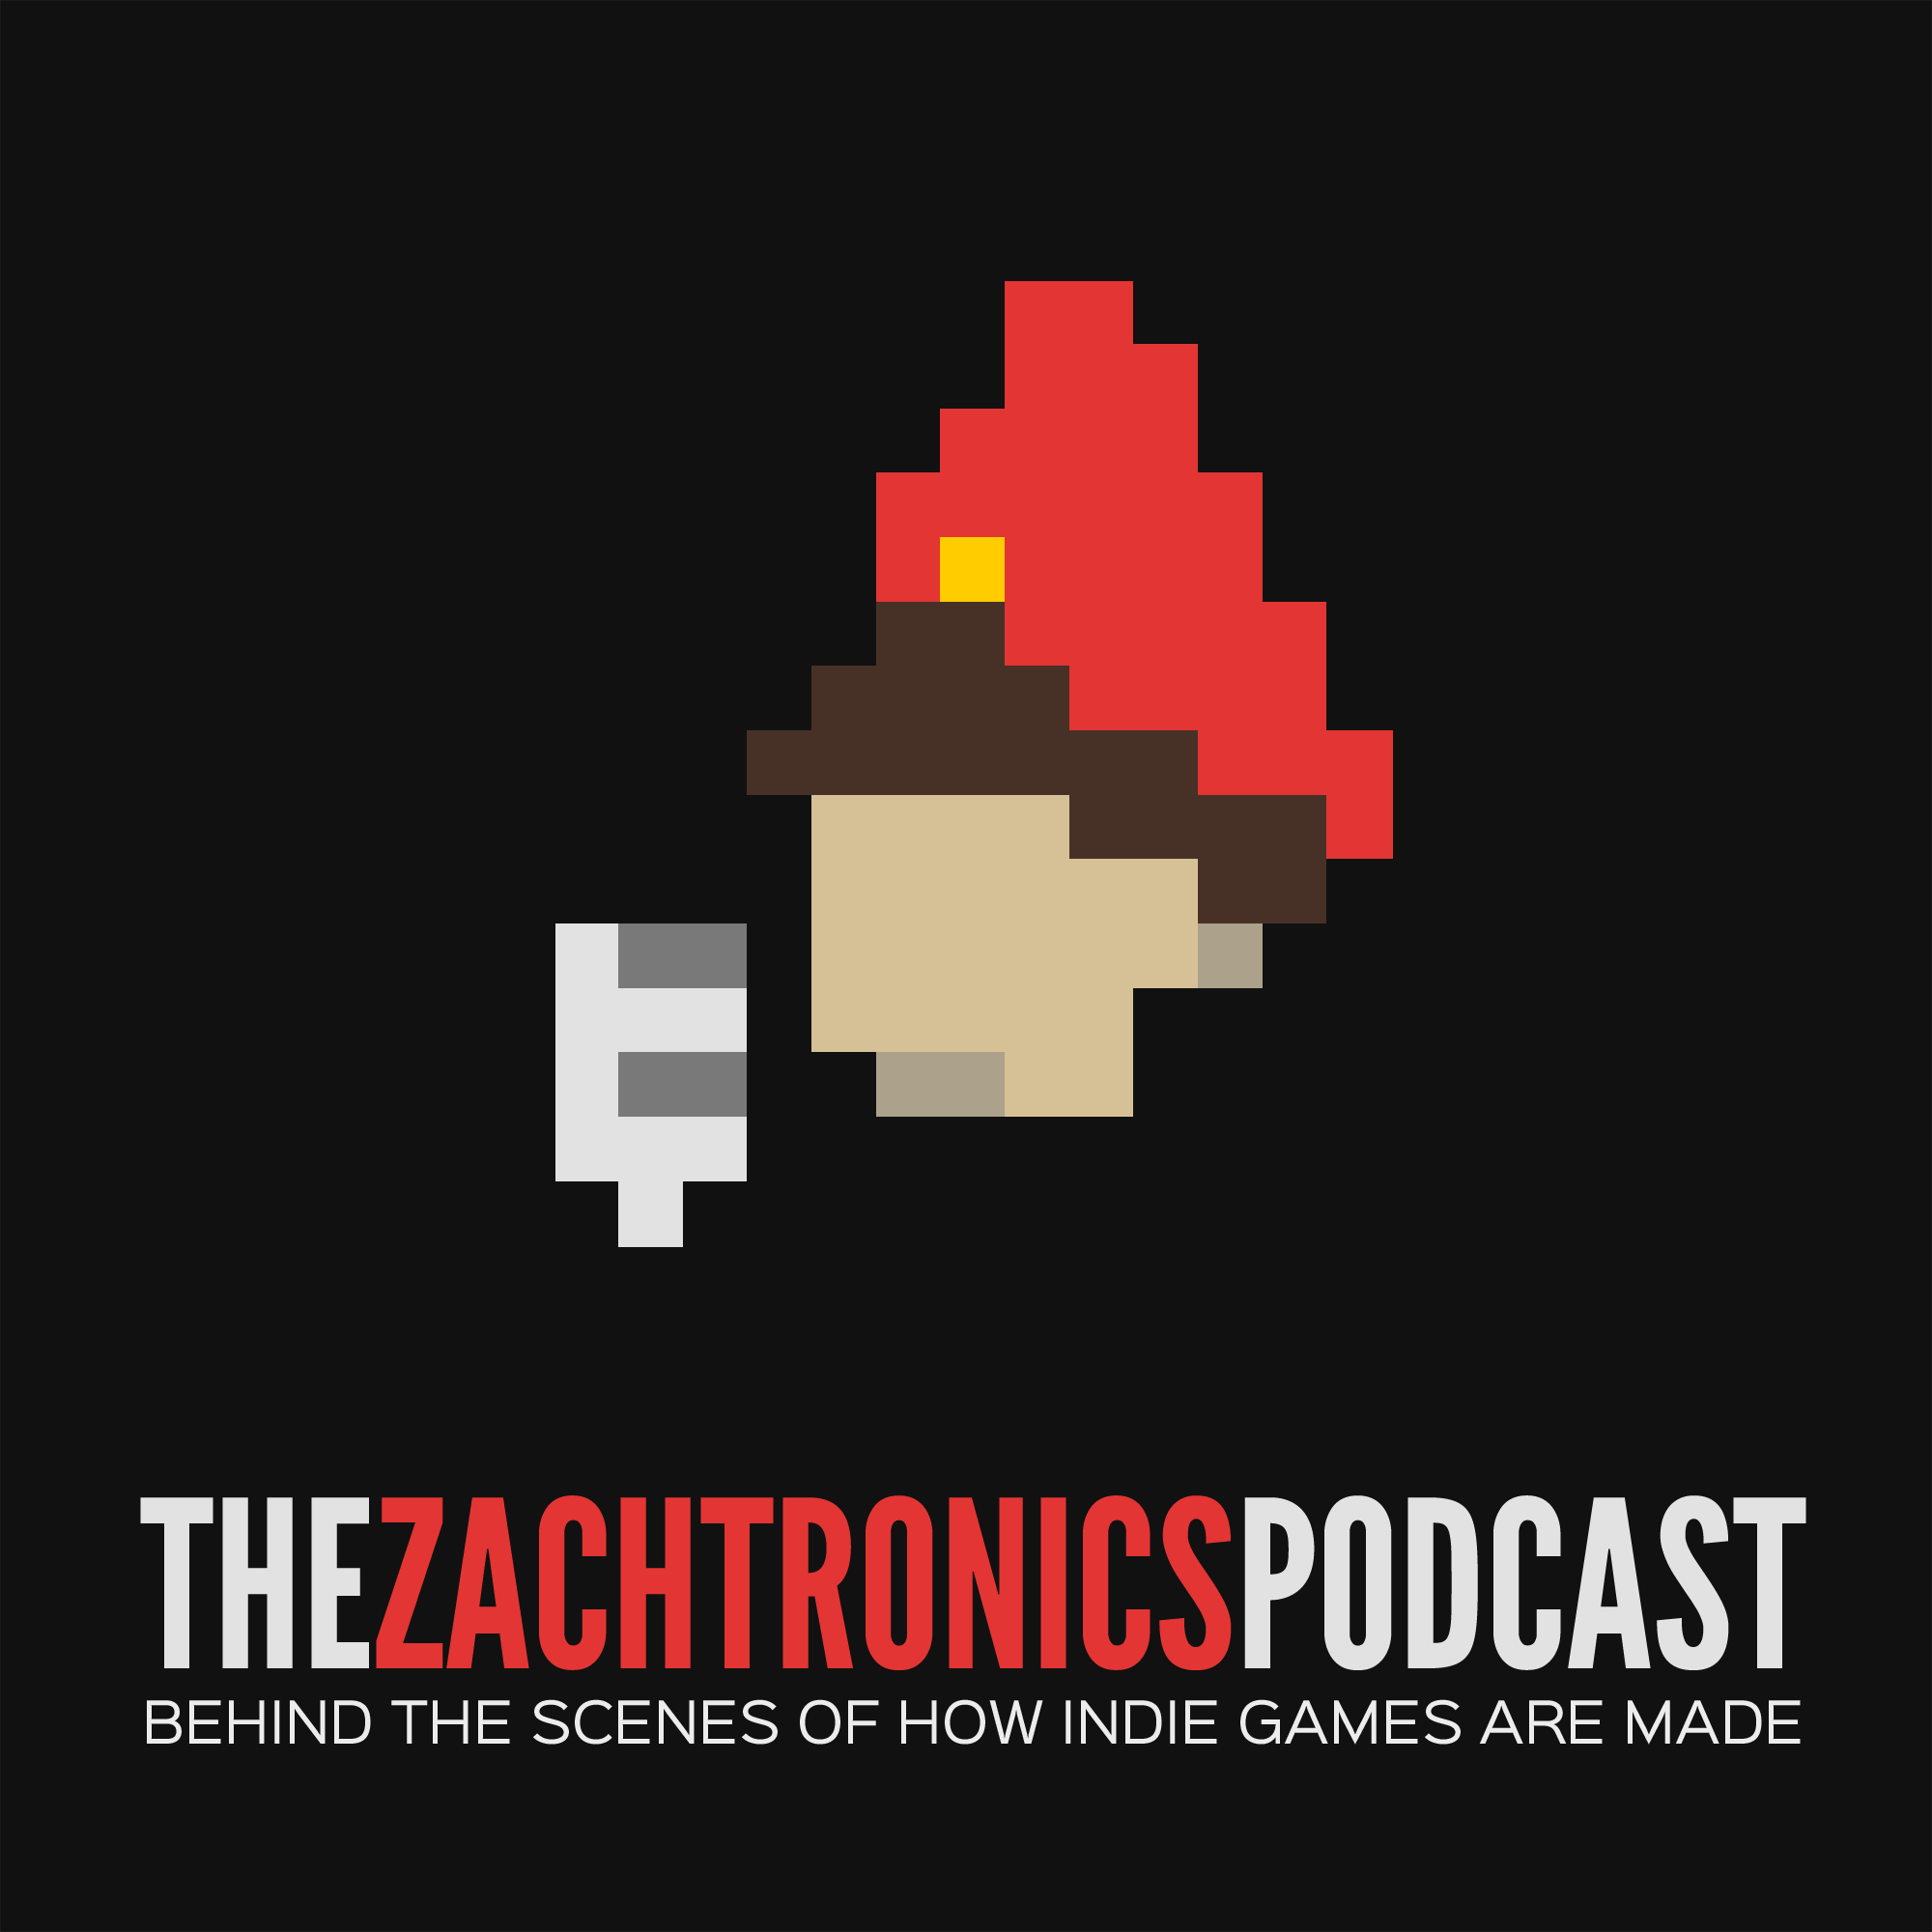 The Zachtronics Podcast